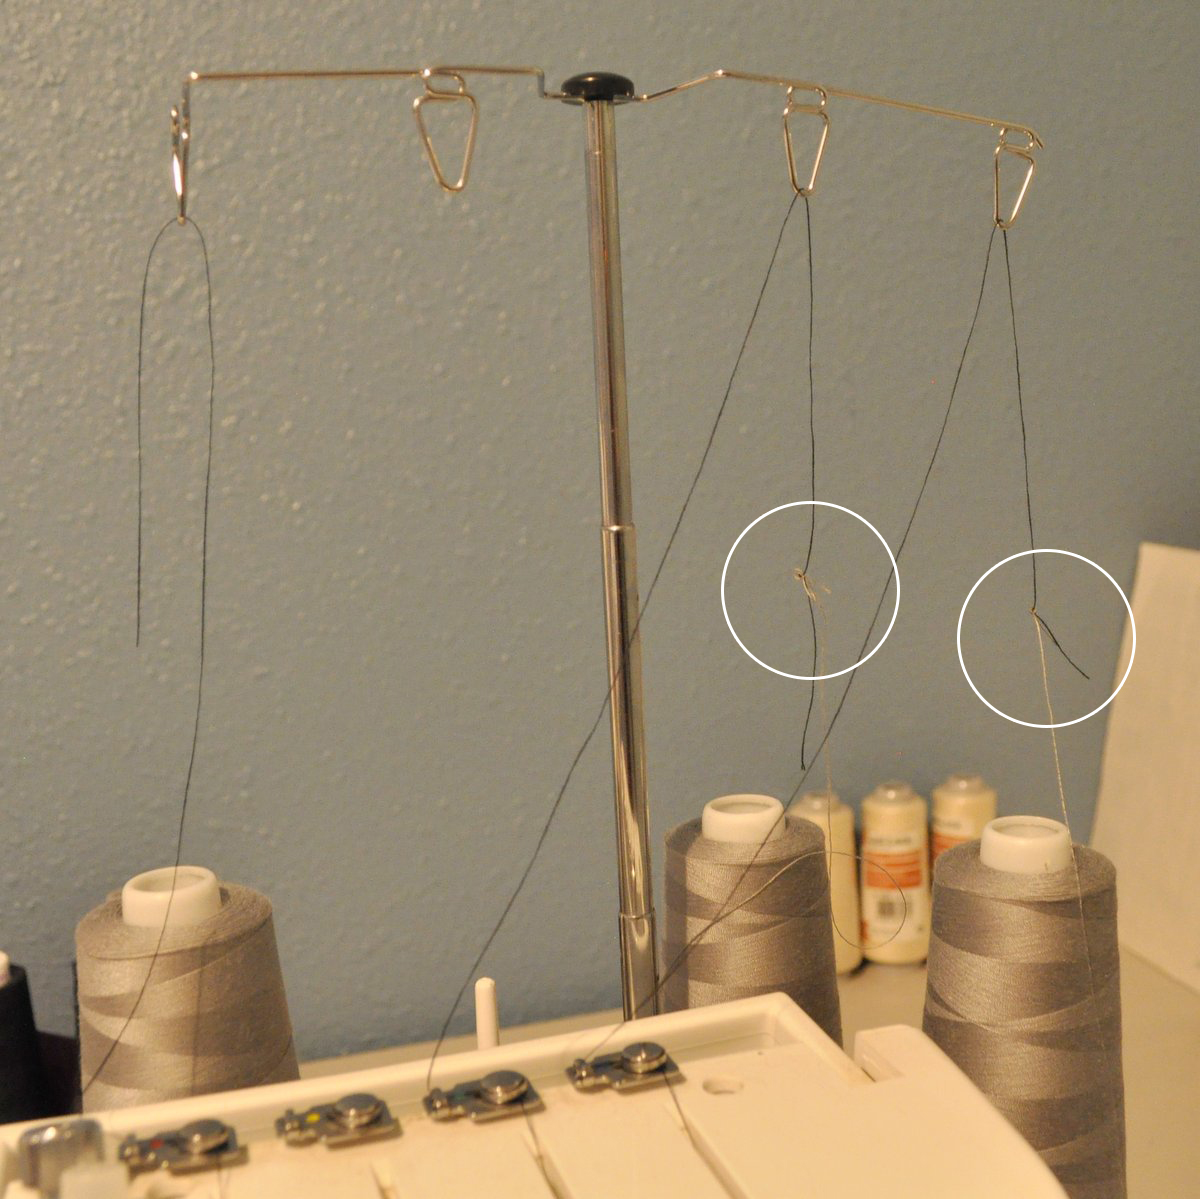 How to change serger thread using the tying off method